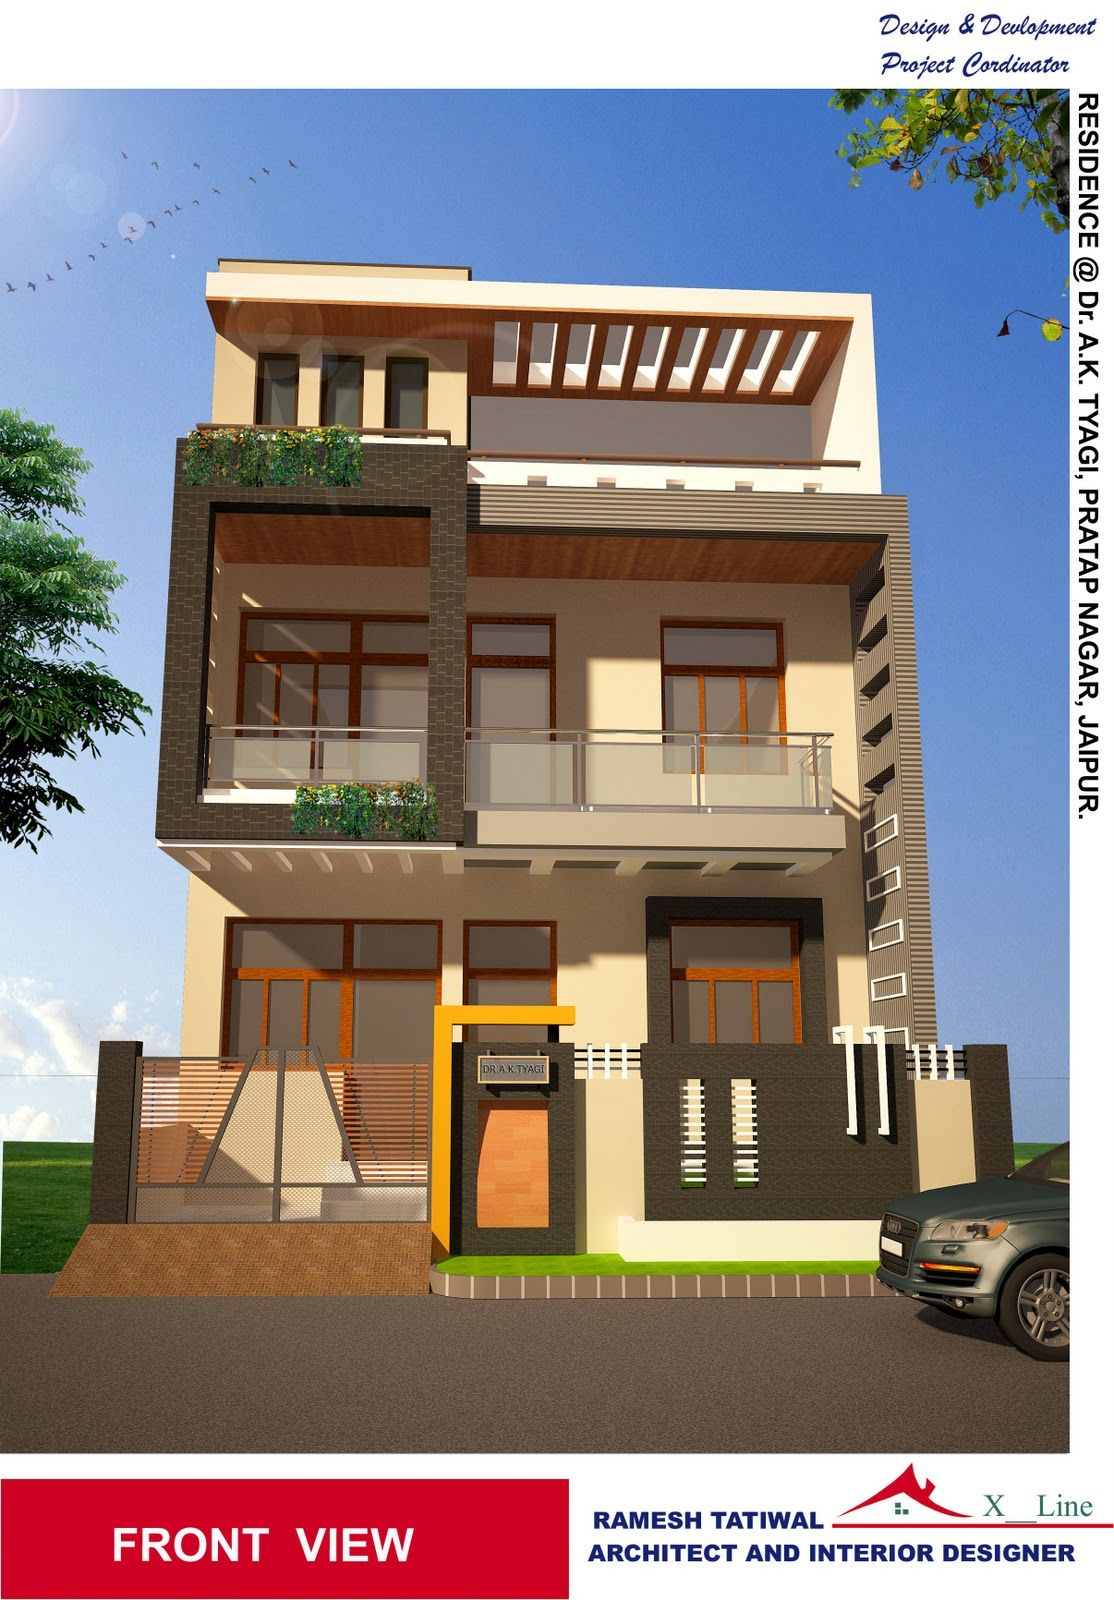 Housedesigns modern indian home architecture design from for Architecture design for home in india